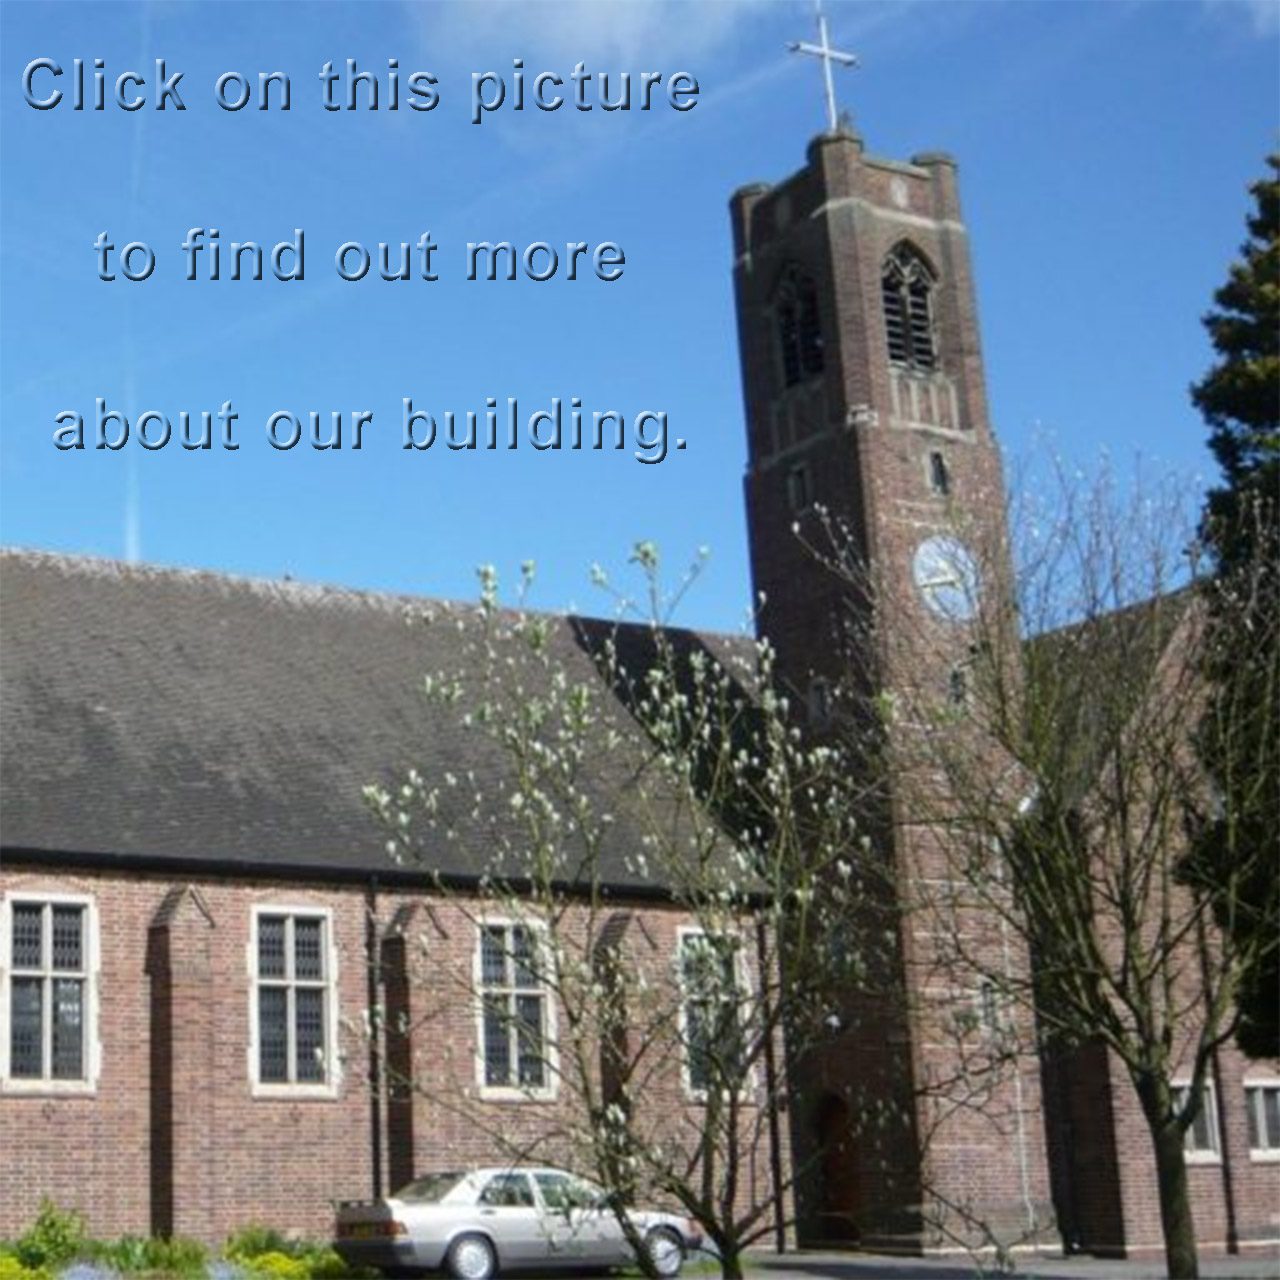 find-out-more-about-building-pic